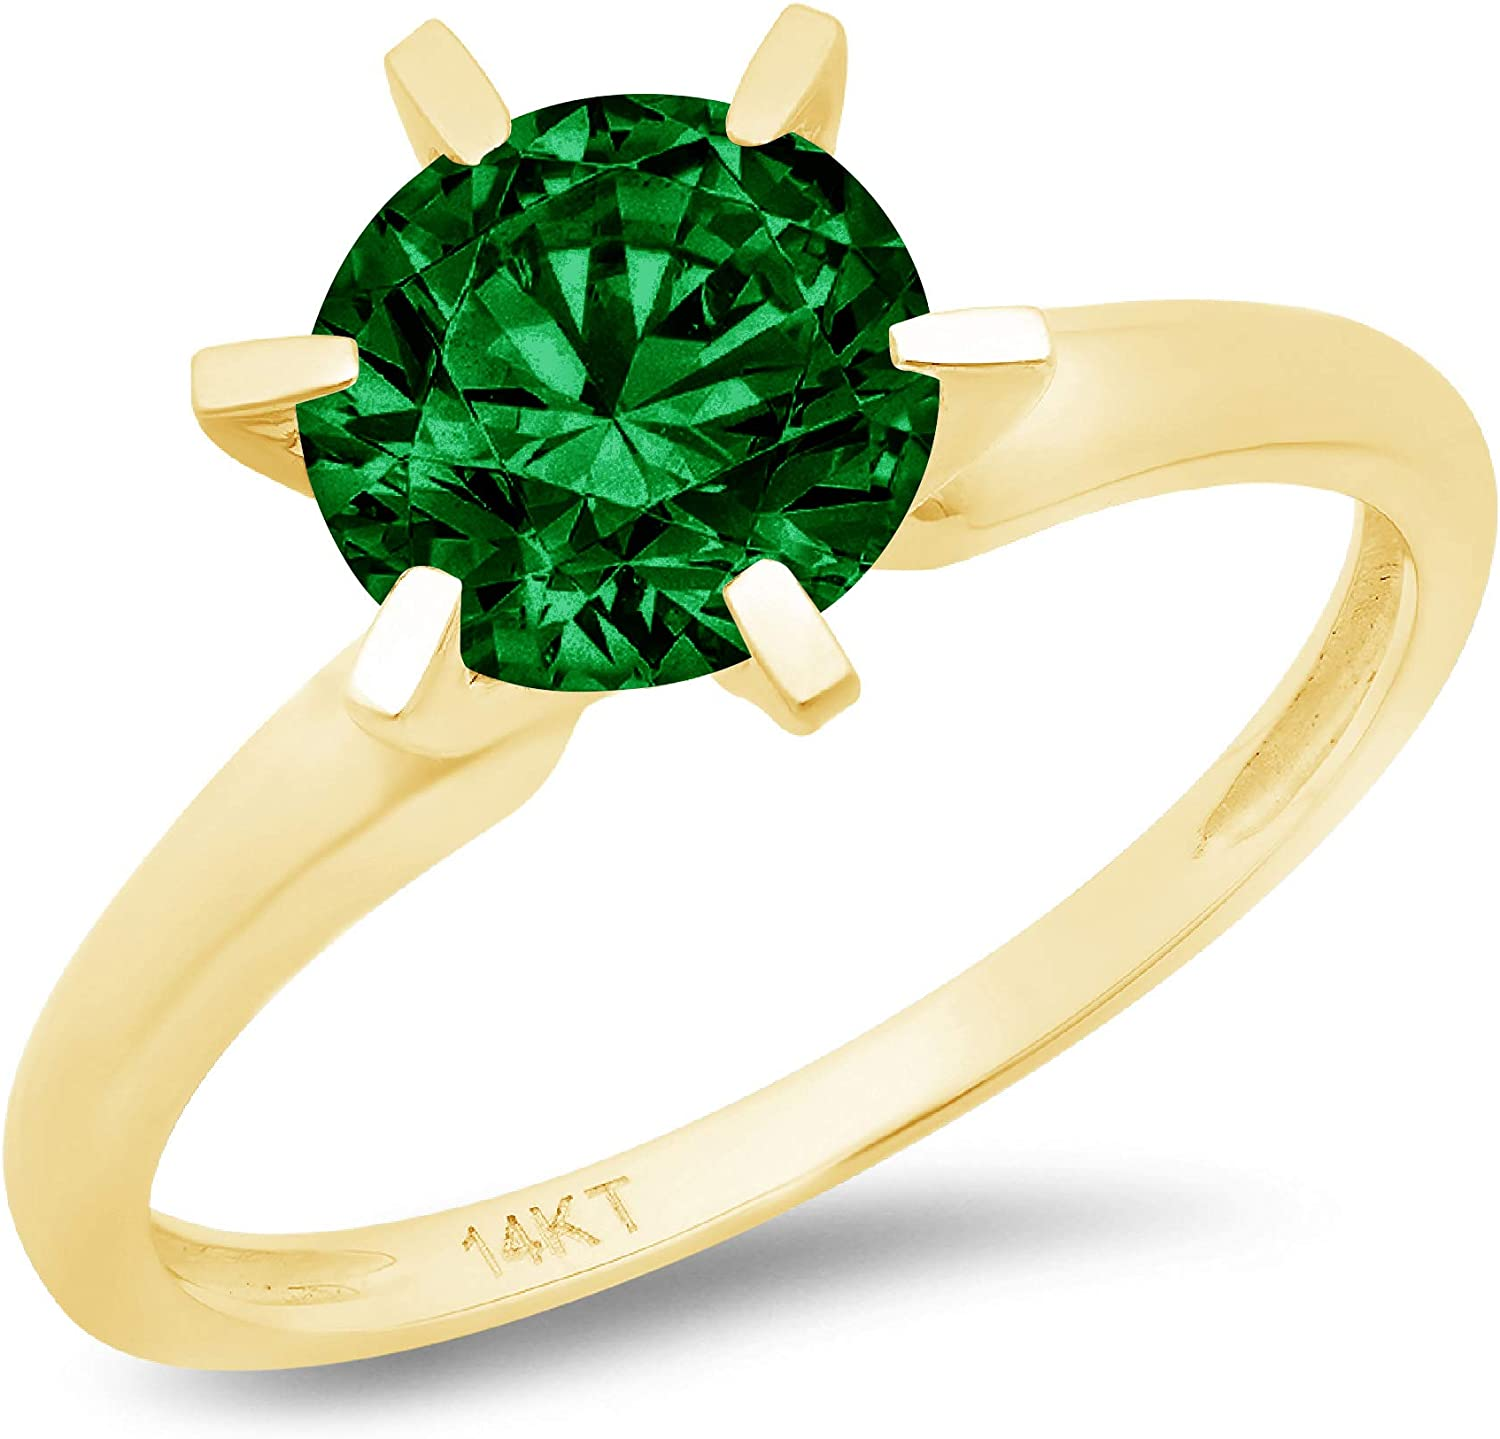 2.9ct Brilliant Round Cut Solitaire Flawless Simulated CZ Green Emerald Ideal VVS1 6-prong Engagement Wedding Bridal Promise Anniversary Designer Ring in Solid 14k Yellow Gold for Women